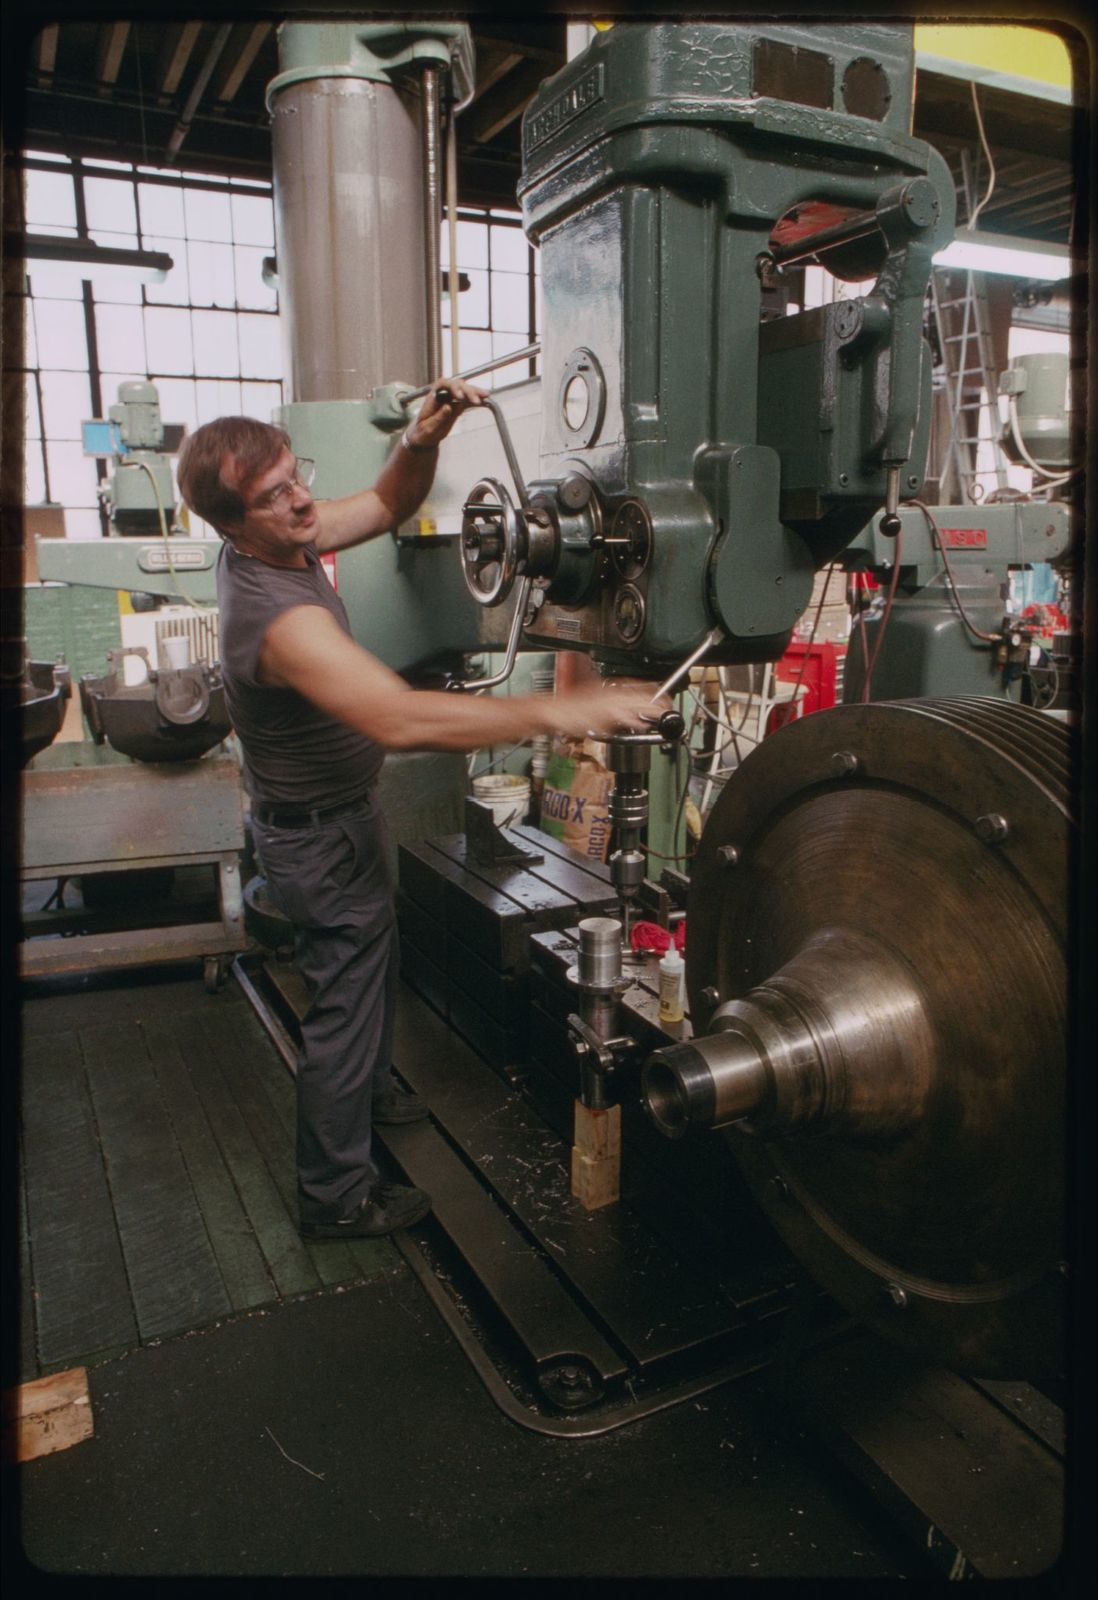 Pete Wychman operating the large boring mill.